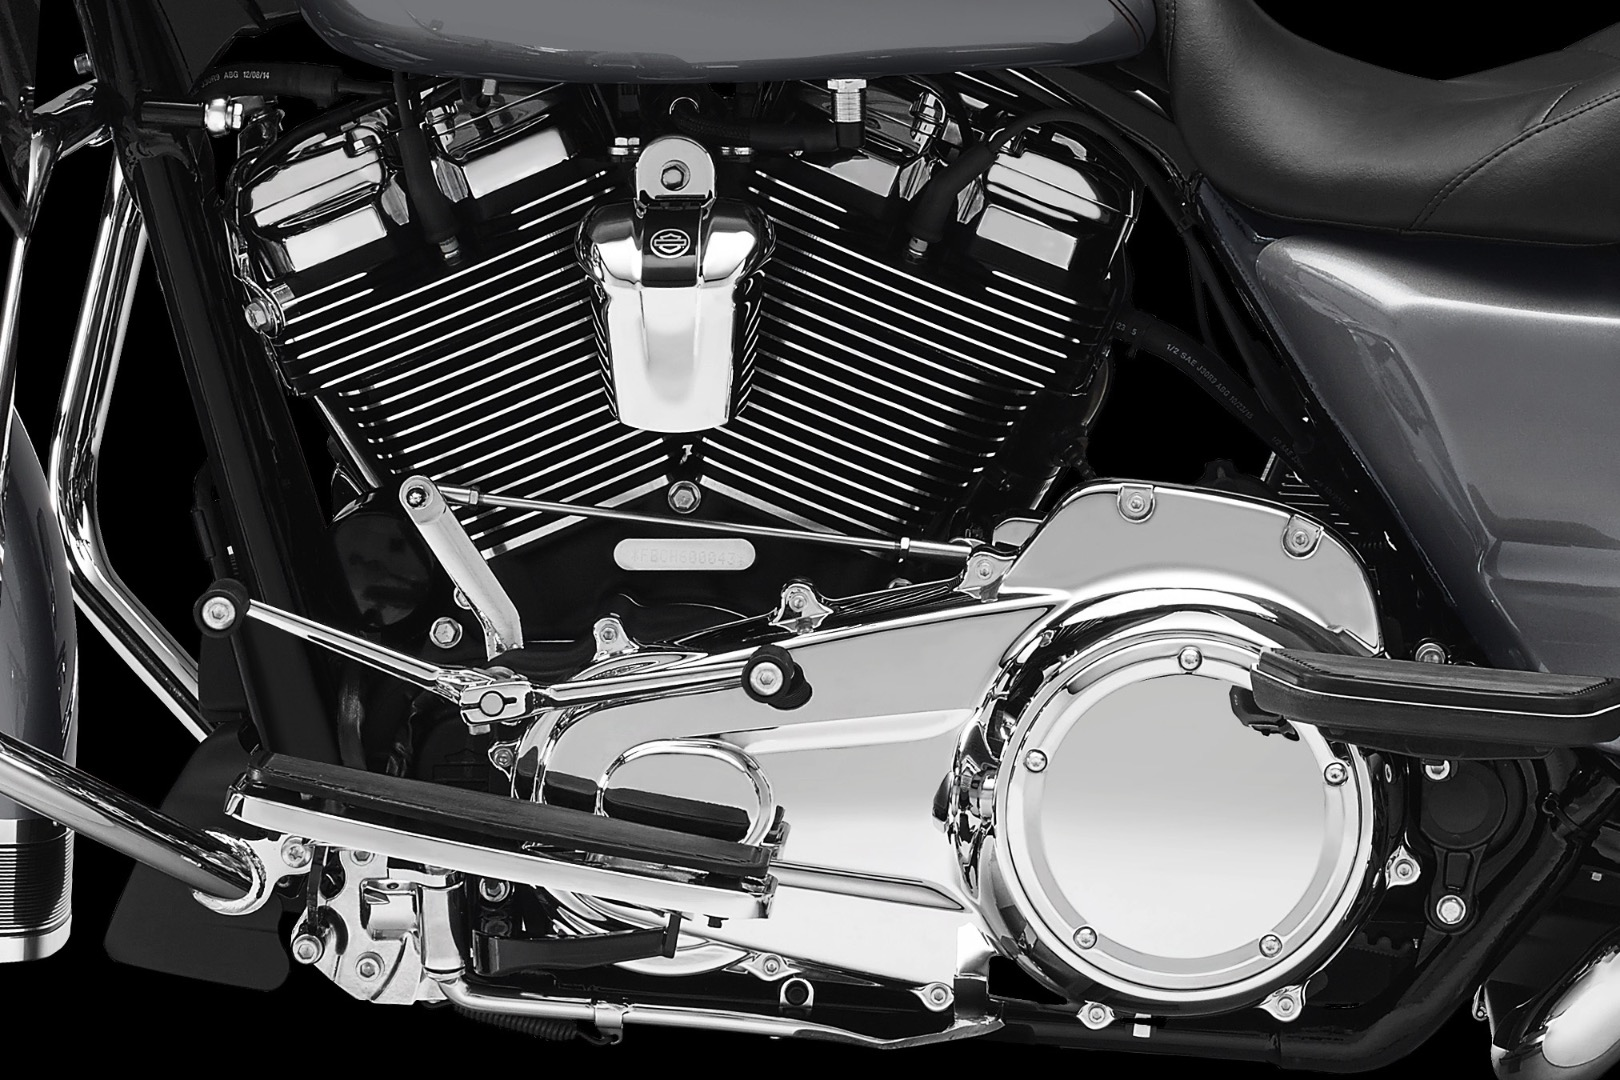 hight resolution of 2017 harley davidson milwaukee eight motor transmission